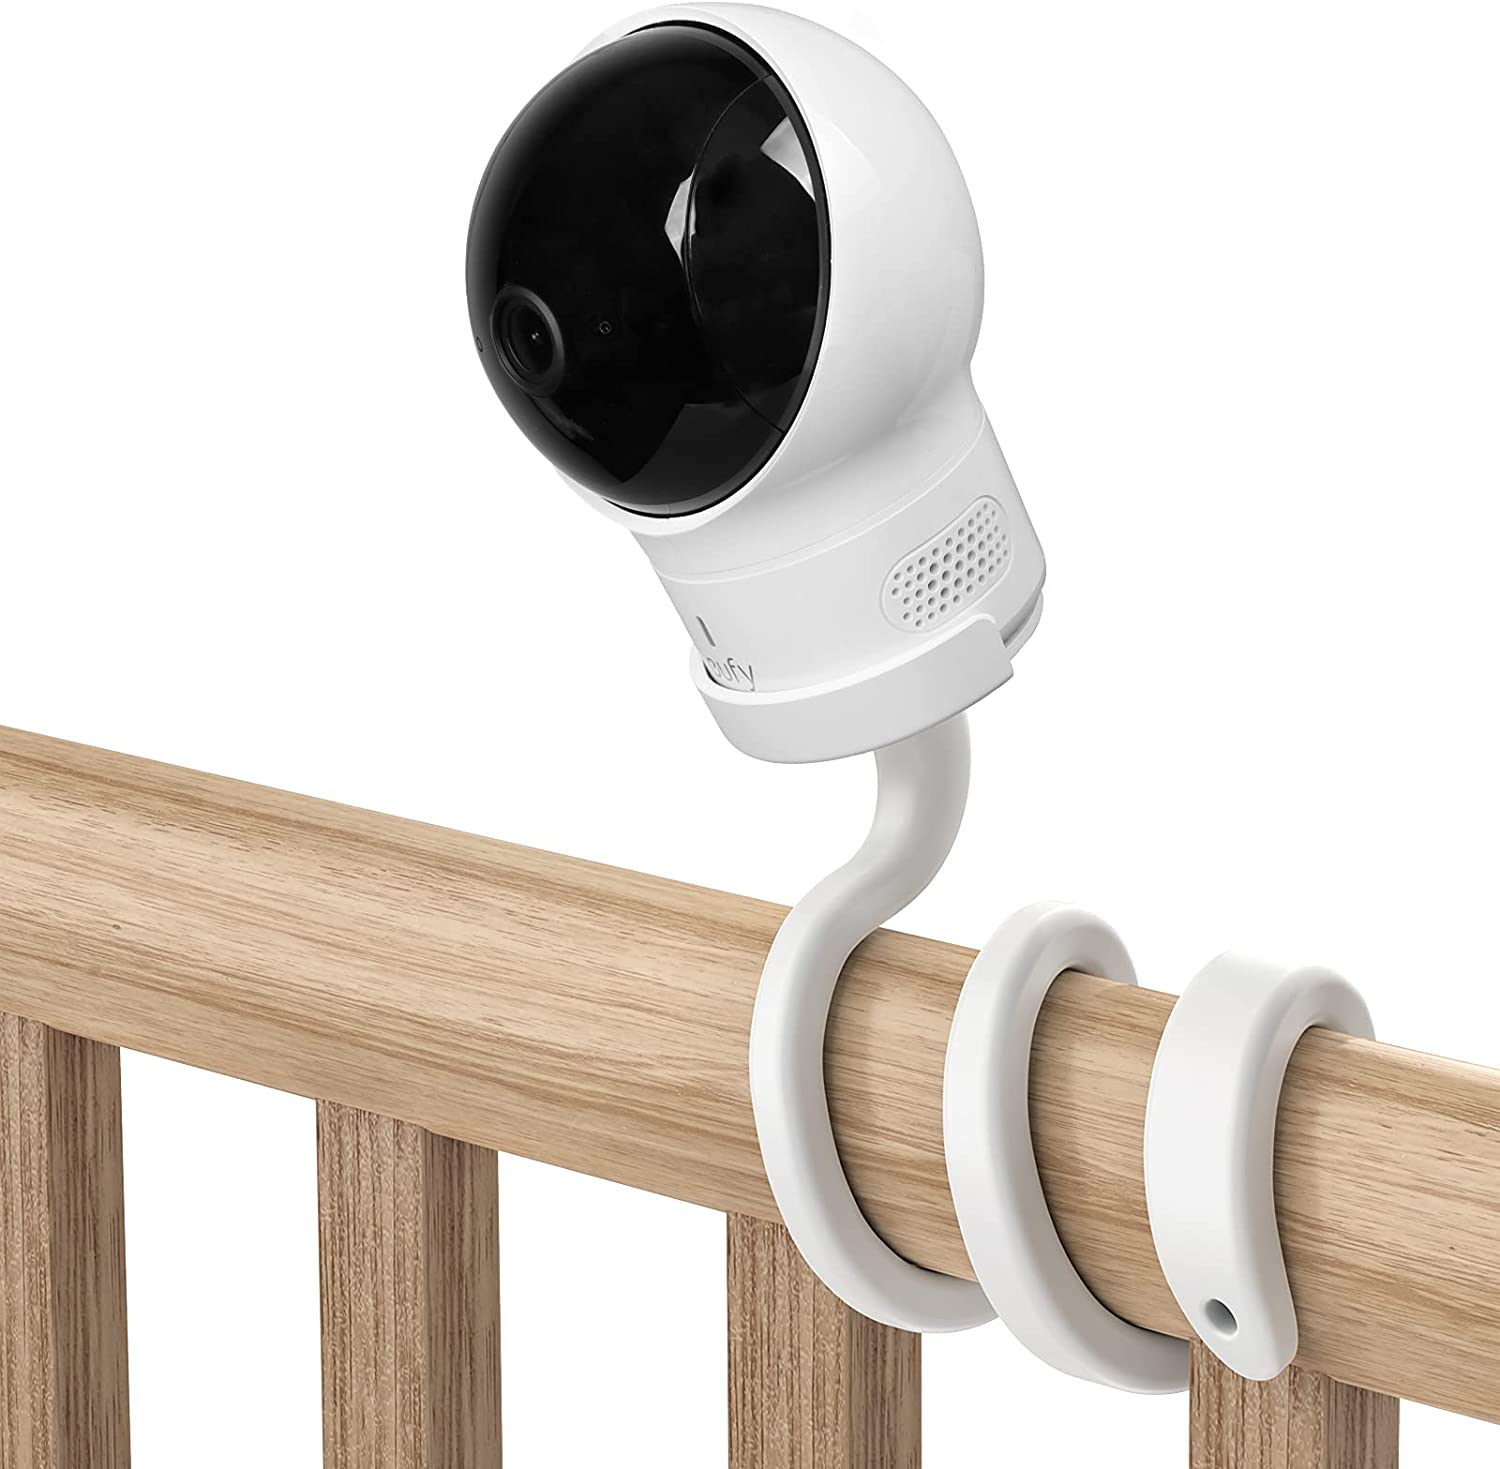 oioaahkeo Baby Monitor Mount Crib Mount for eufy Baby Monitor,Adjustable Mount for Eufy Spaceview, Spaceview Pro and Spaceview S Baby Monitor Safe (No Drilling)